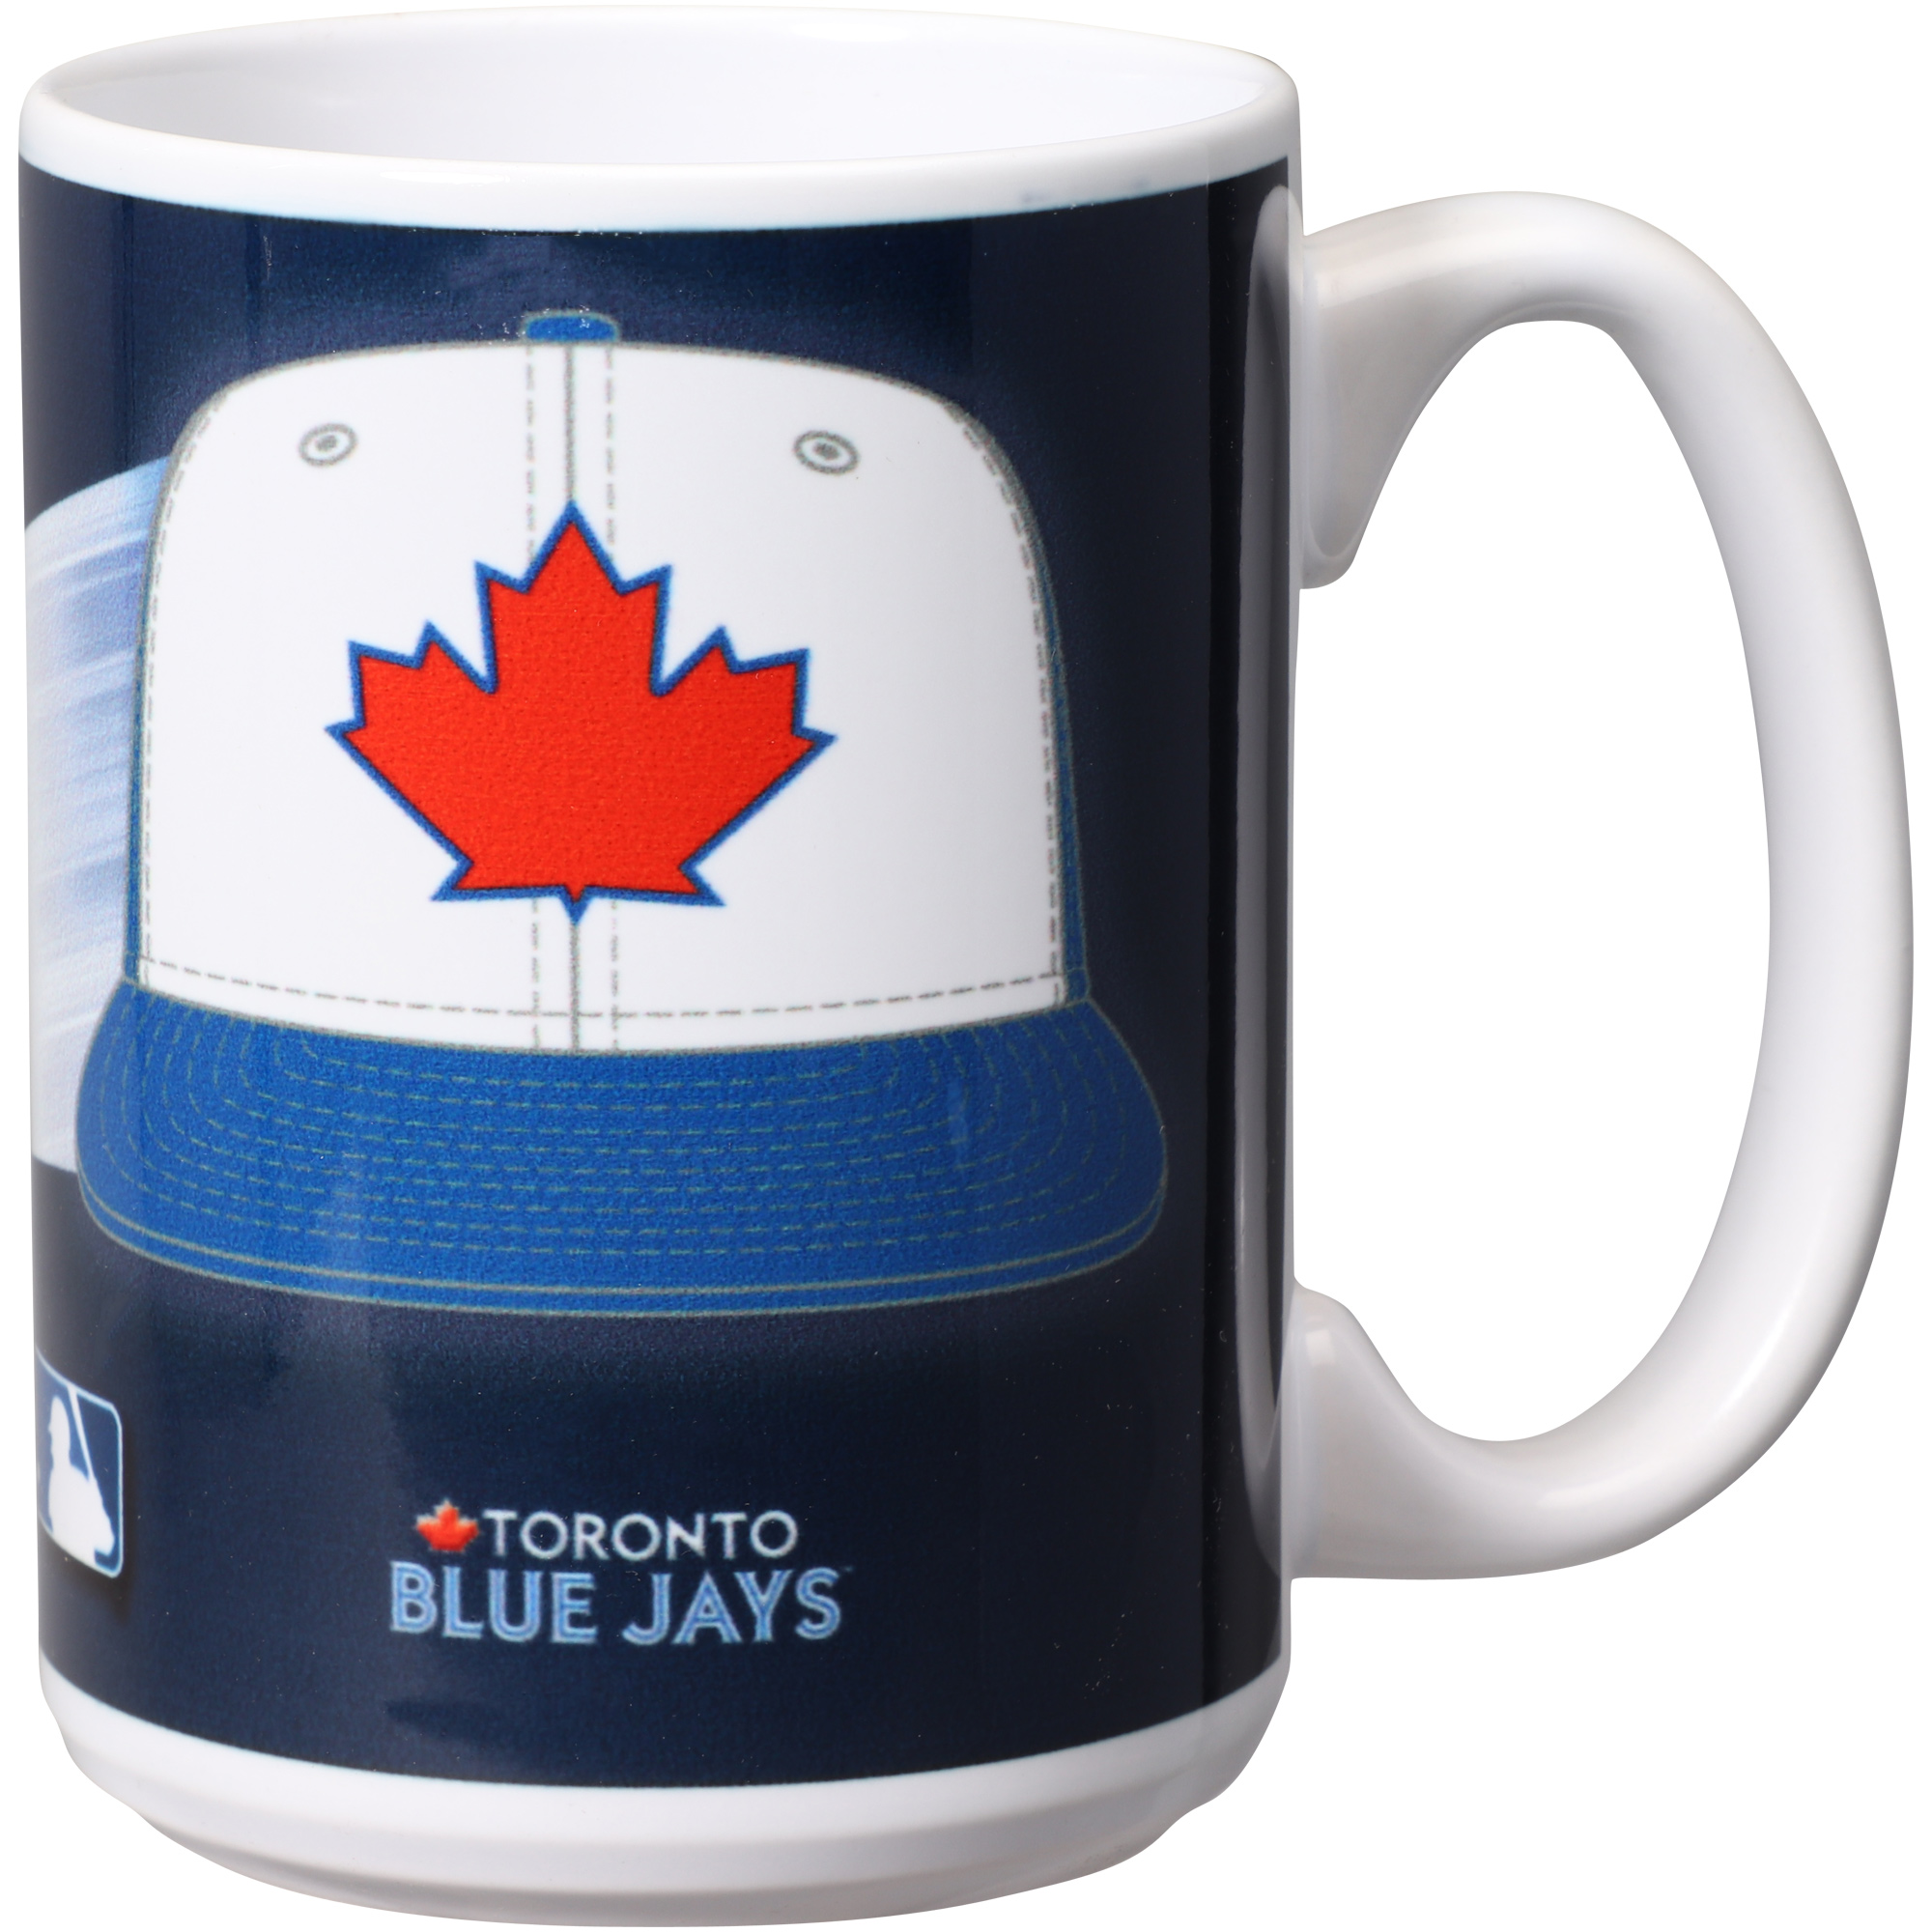 Toronto Blue Jays 15oz. Team 3D Graphic Mug - No Size